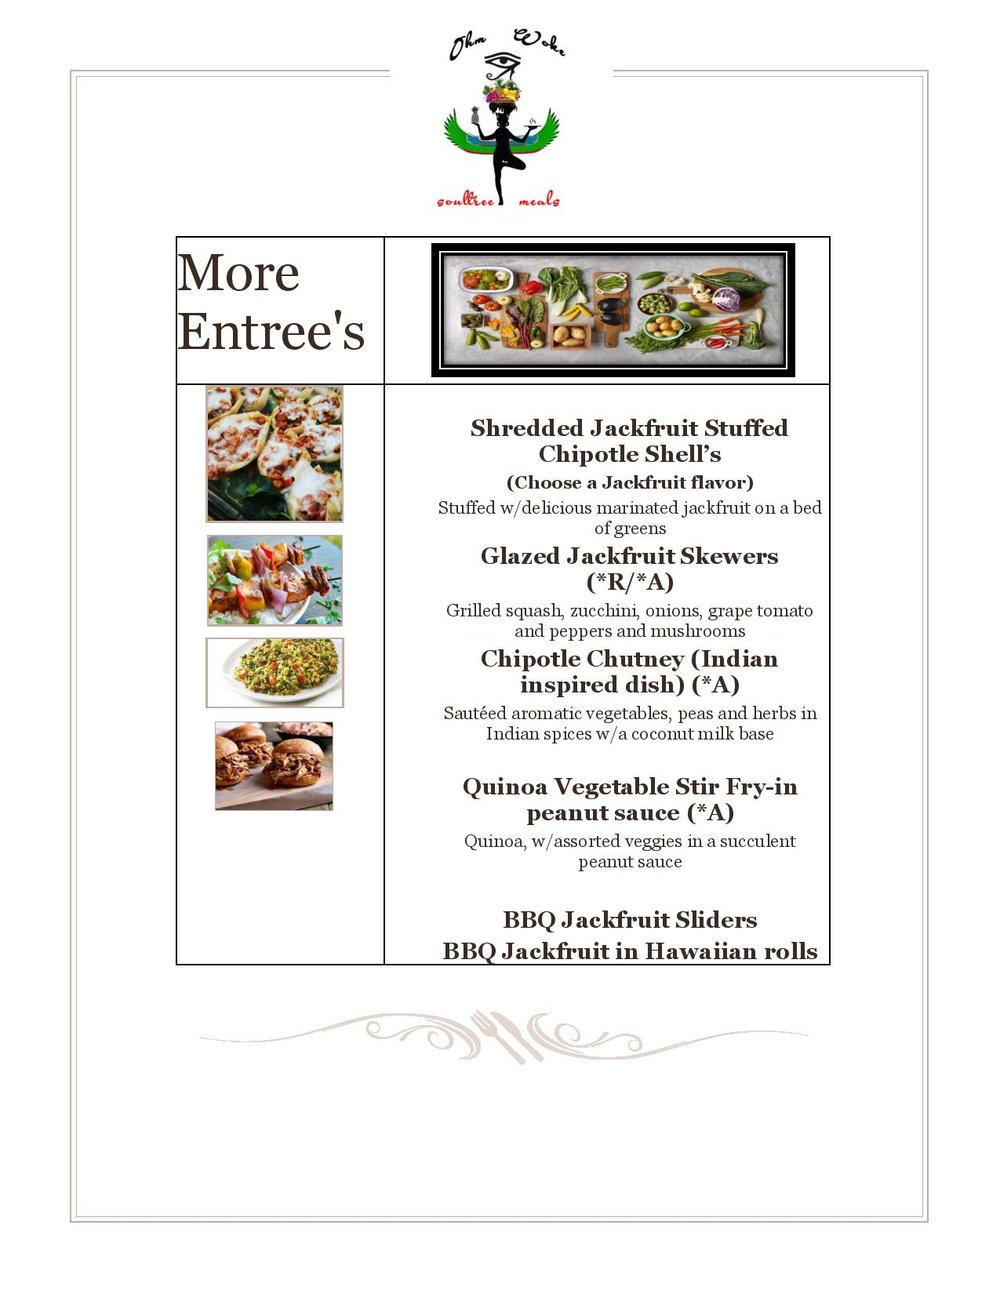 OHM CATERING Menu-page-002.jpg